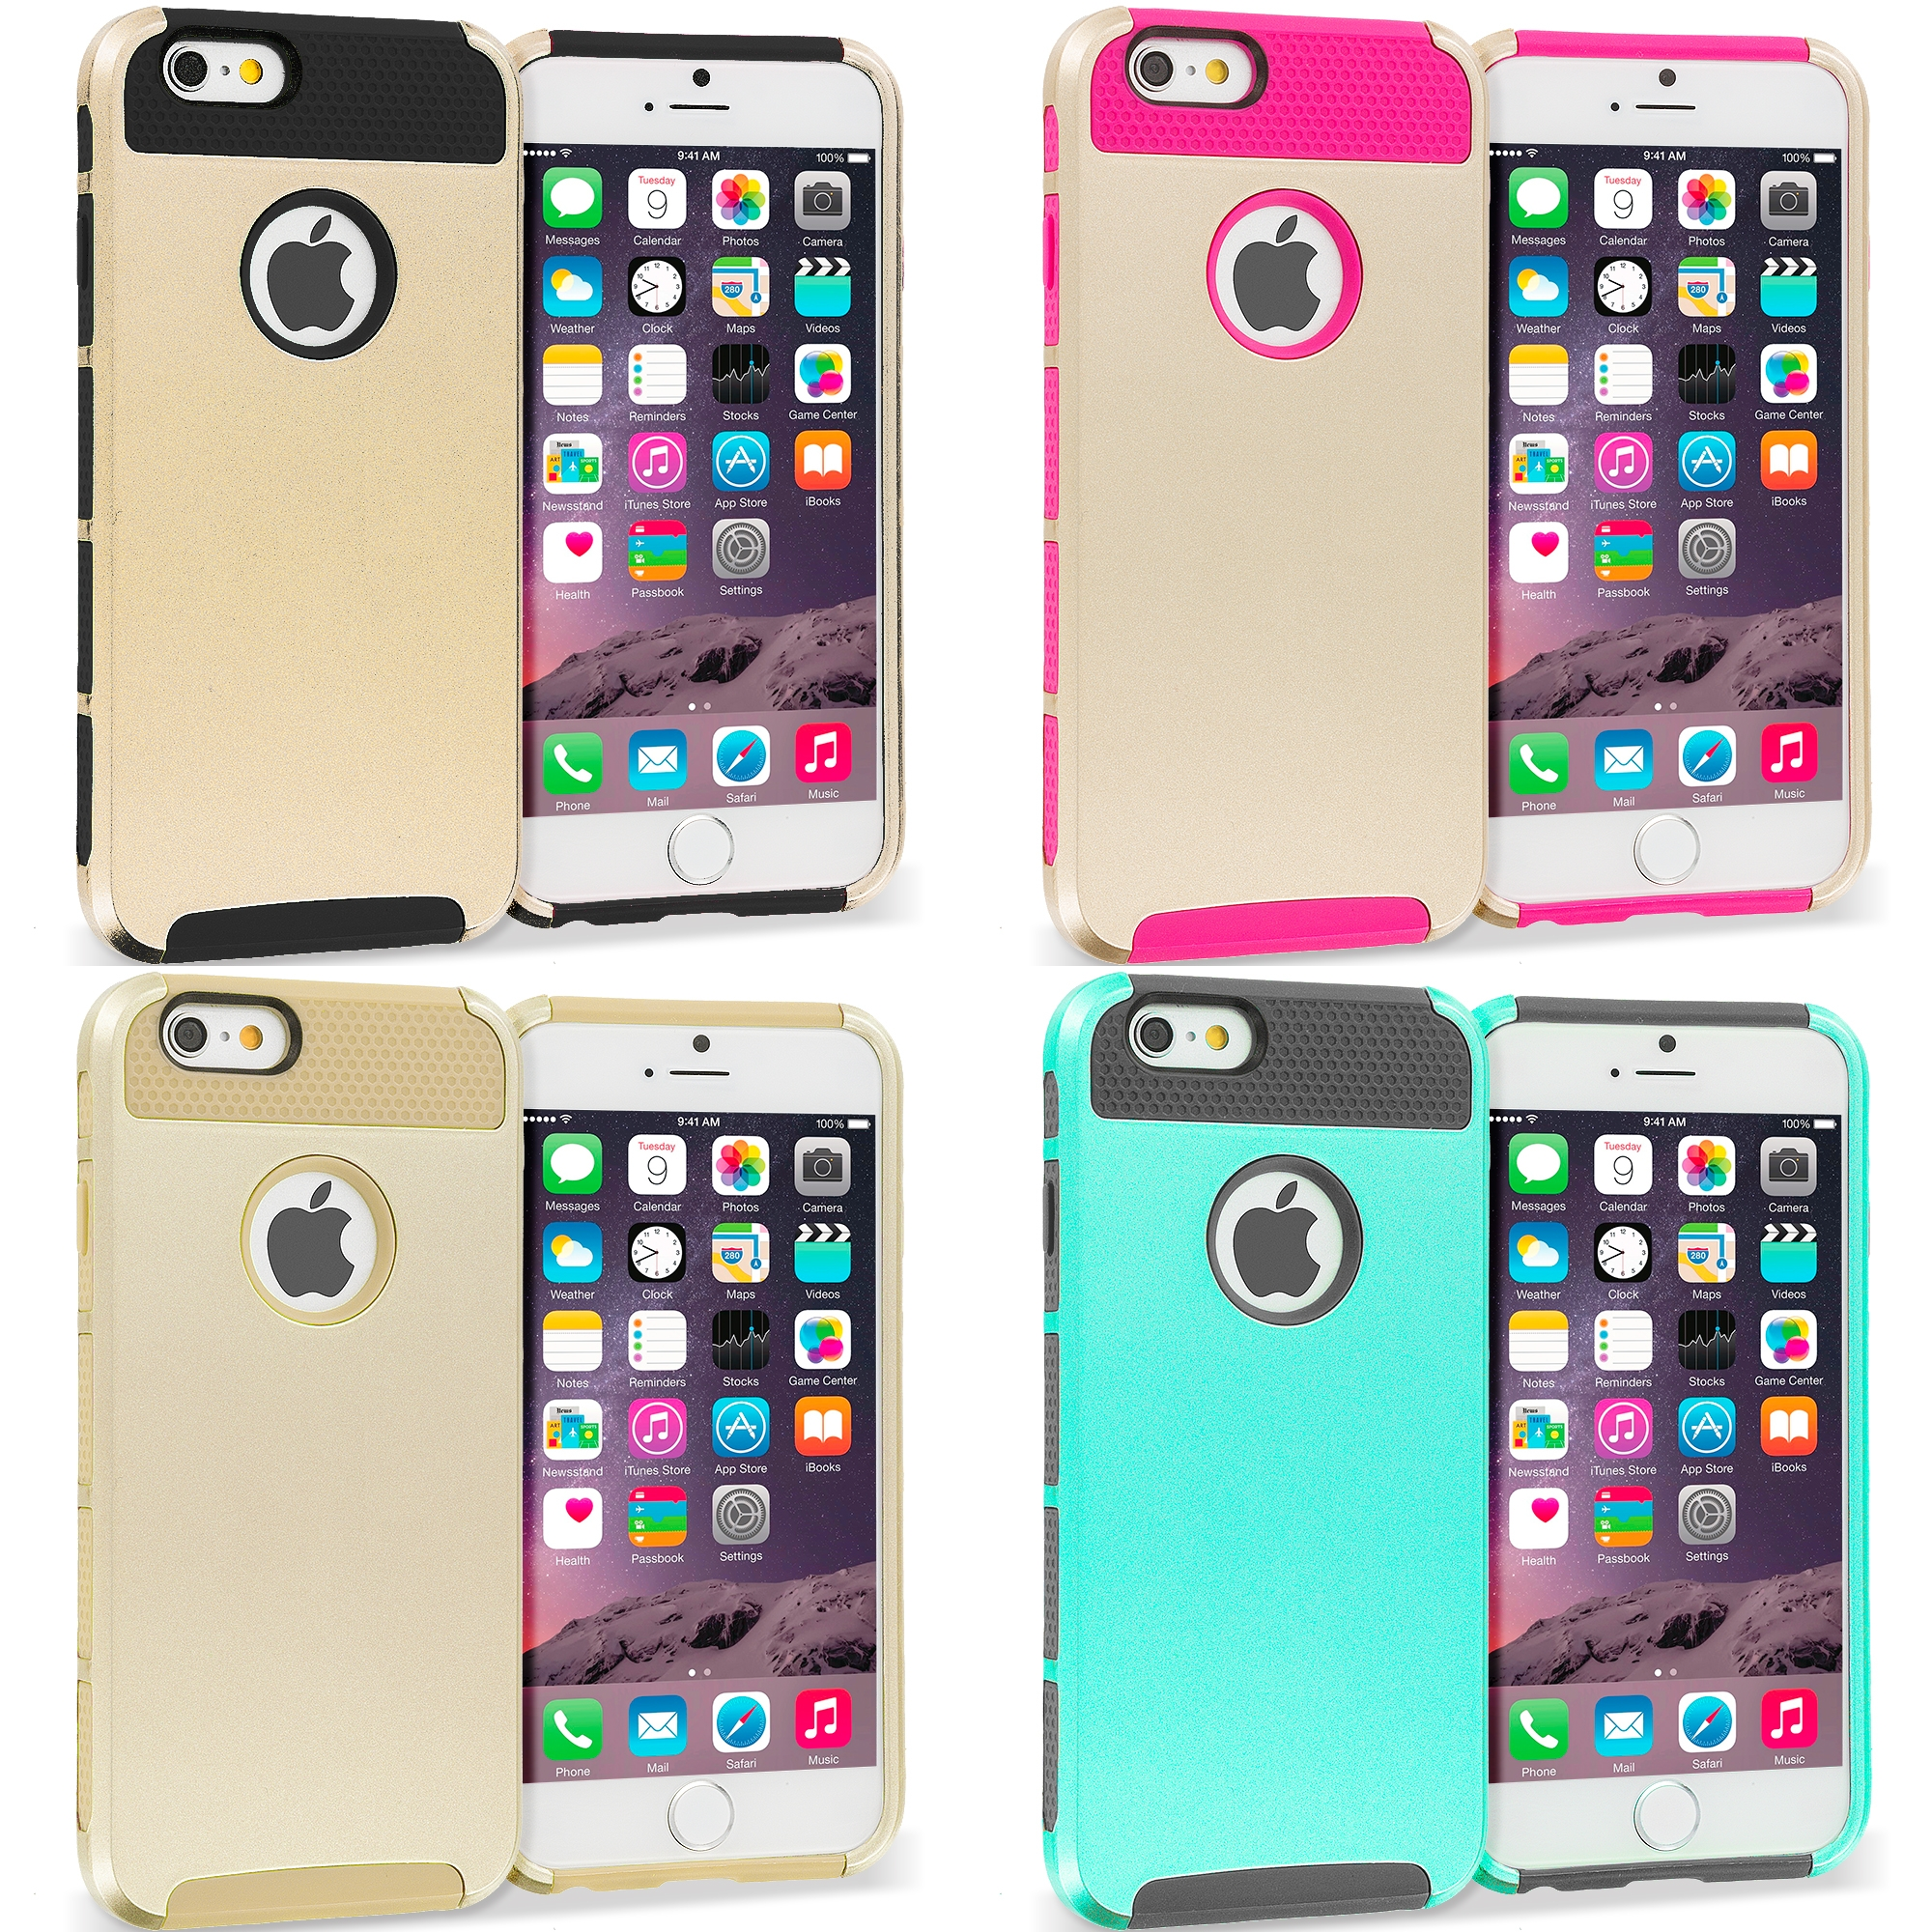 Apple iPhone 6 6S (4.7) 4 in 1 Combo Bundle Pack - Hybrid Hard TPU Honeycomb Rugged Case Cover